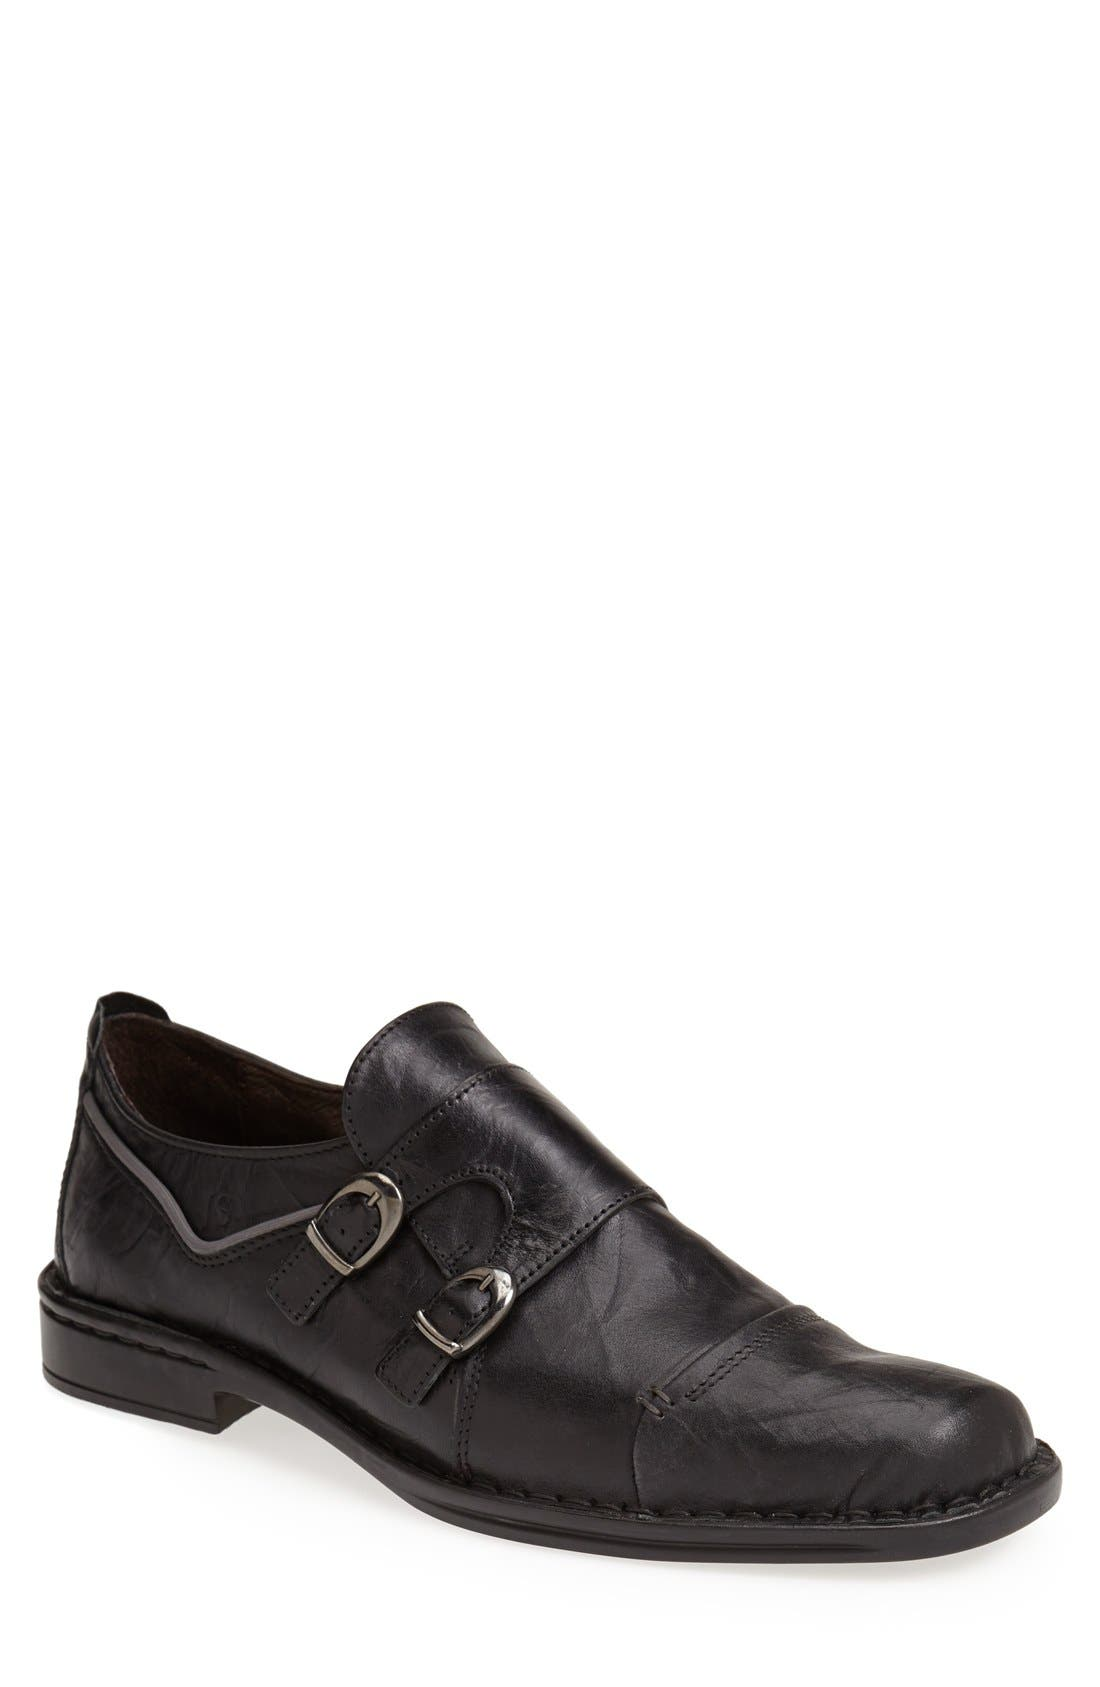 Alternate Image 1 Selected - Josef Seibel 'Douglas 11' Double Monk Strap Shoe (Men)